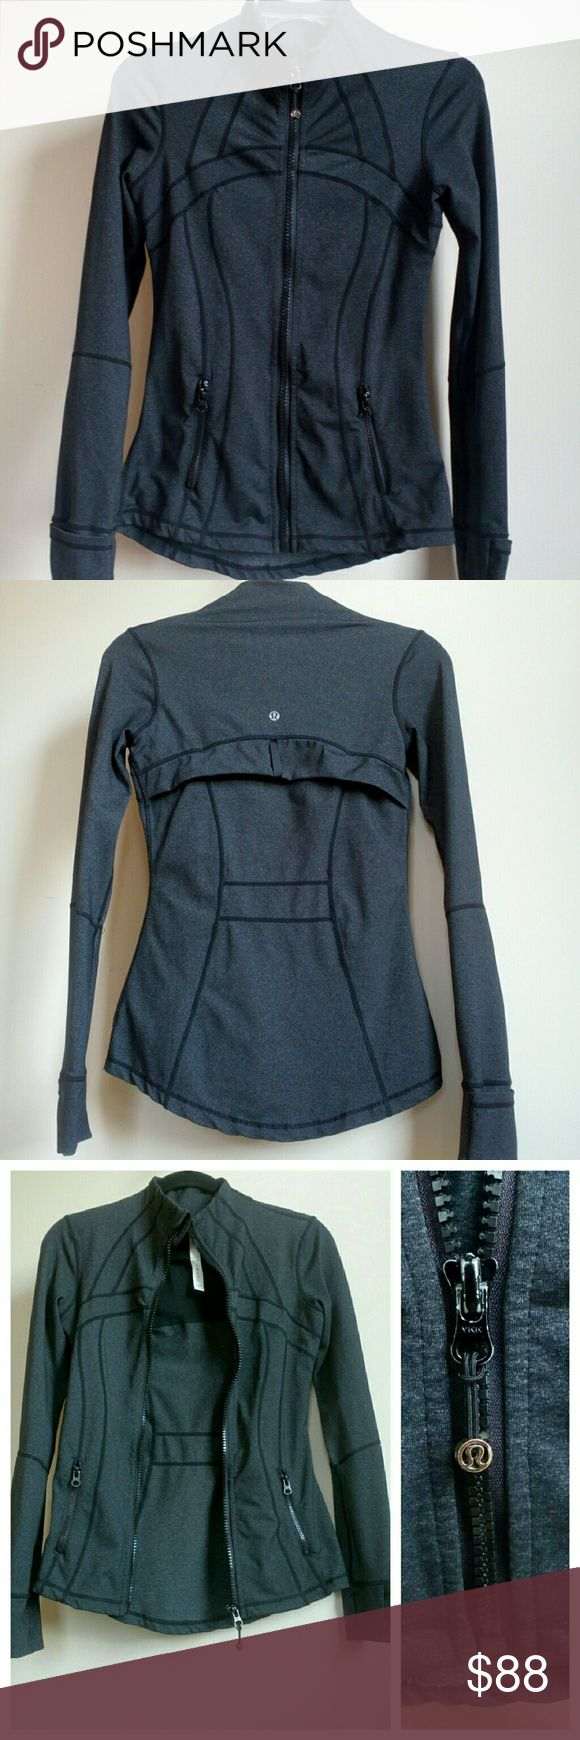 LuluLemon jacket? LULULEMON jacket in?gray color, zip down, thumb holes. Snug fit. Thick fabric. Worn, no flaws. Some wear marks on metal zipper slider if look close. Jacket is n great condition! lululemon athletica Jackets & Coats